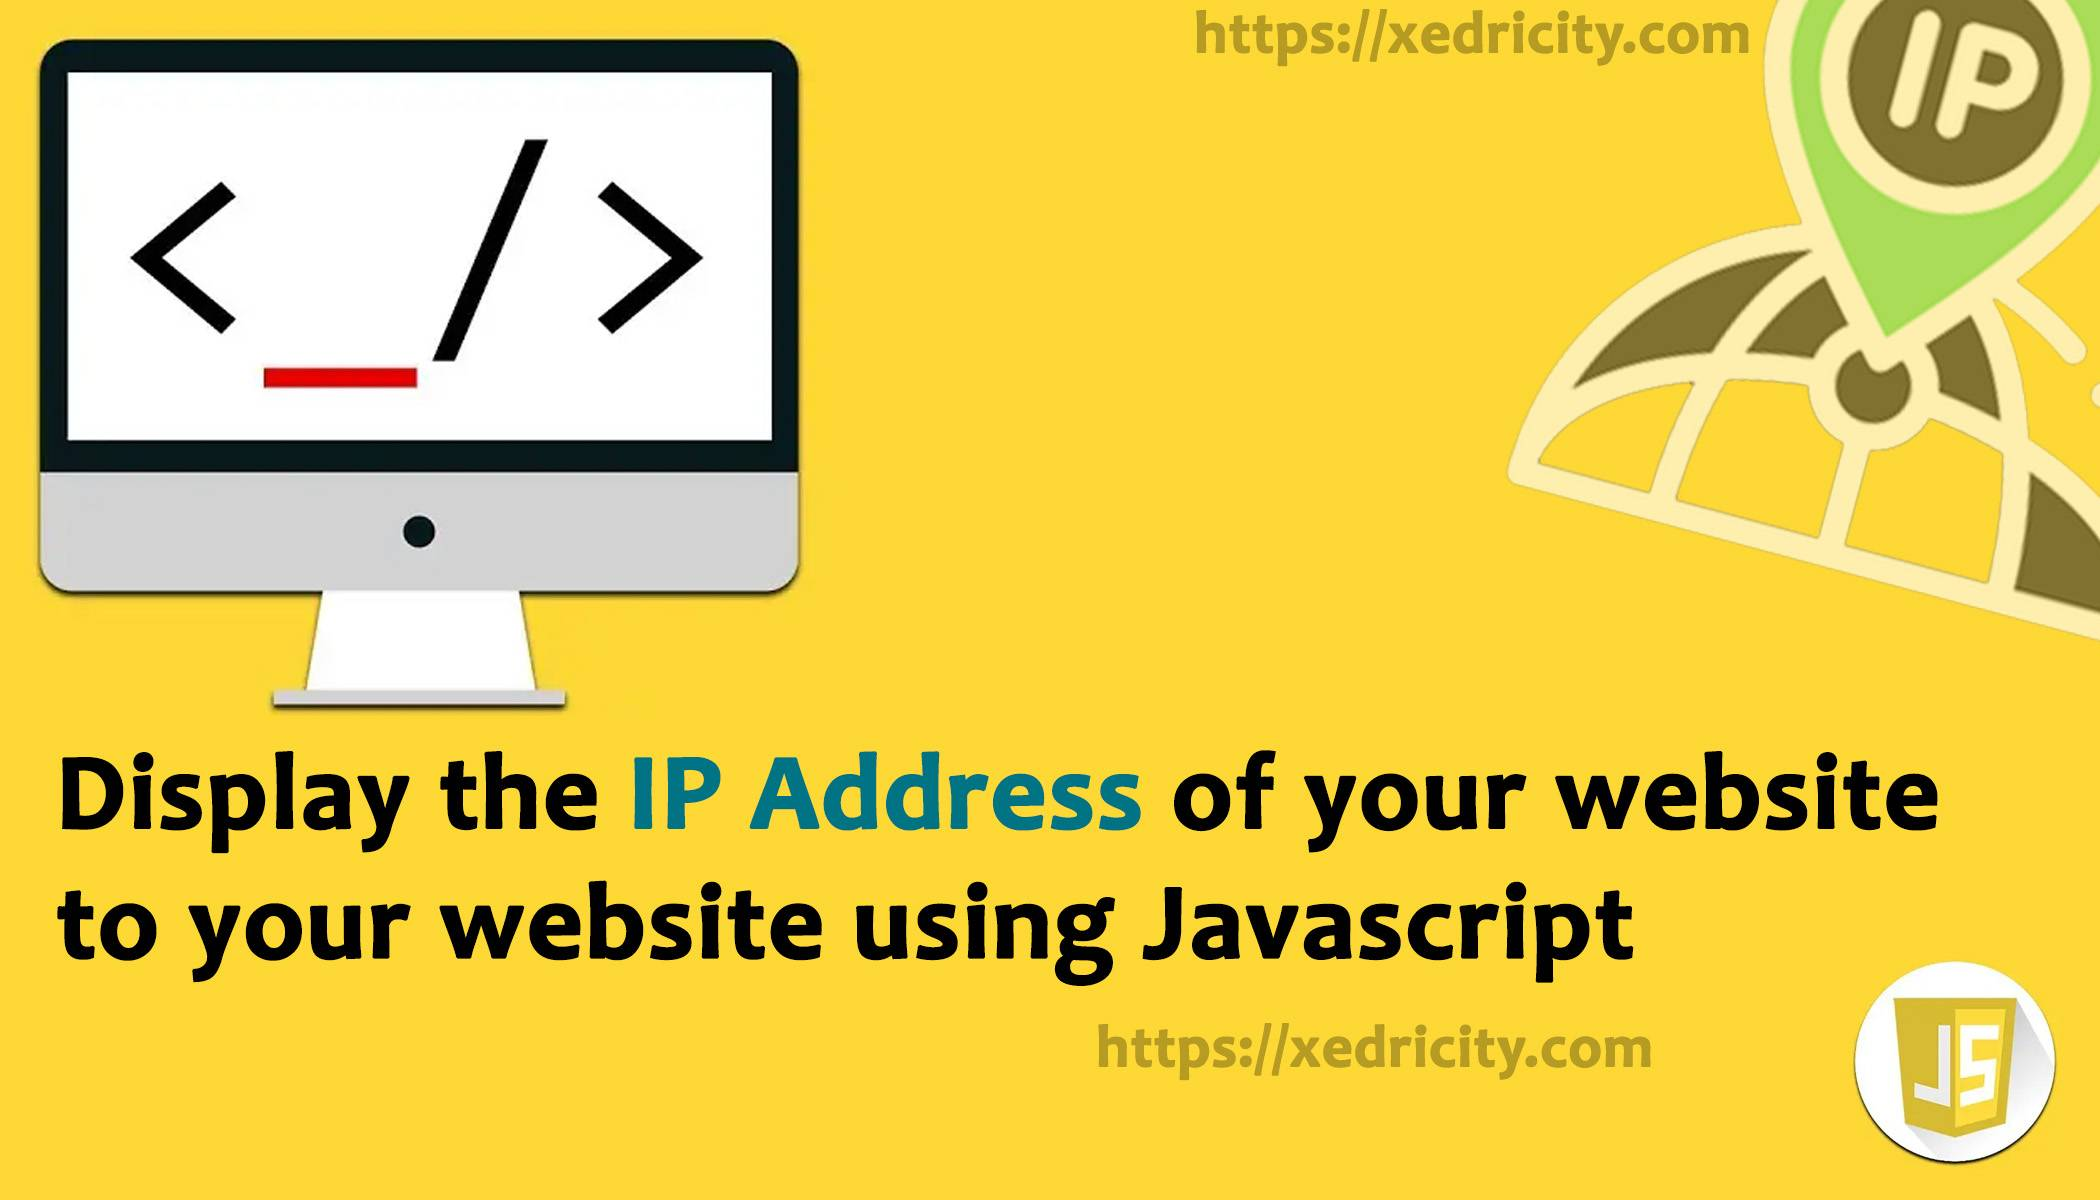 Display the IP address of the user to your website